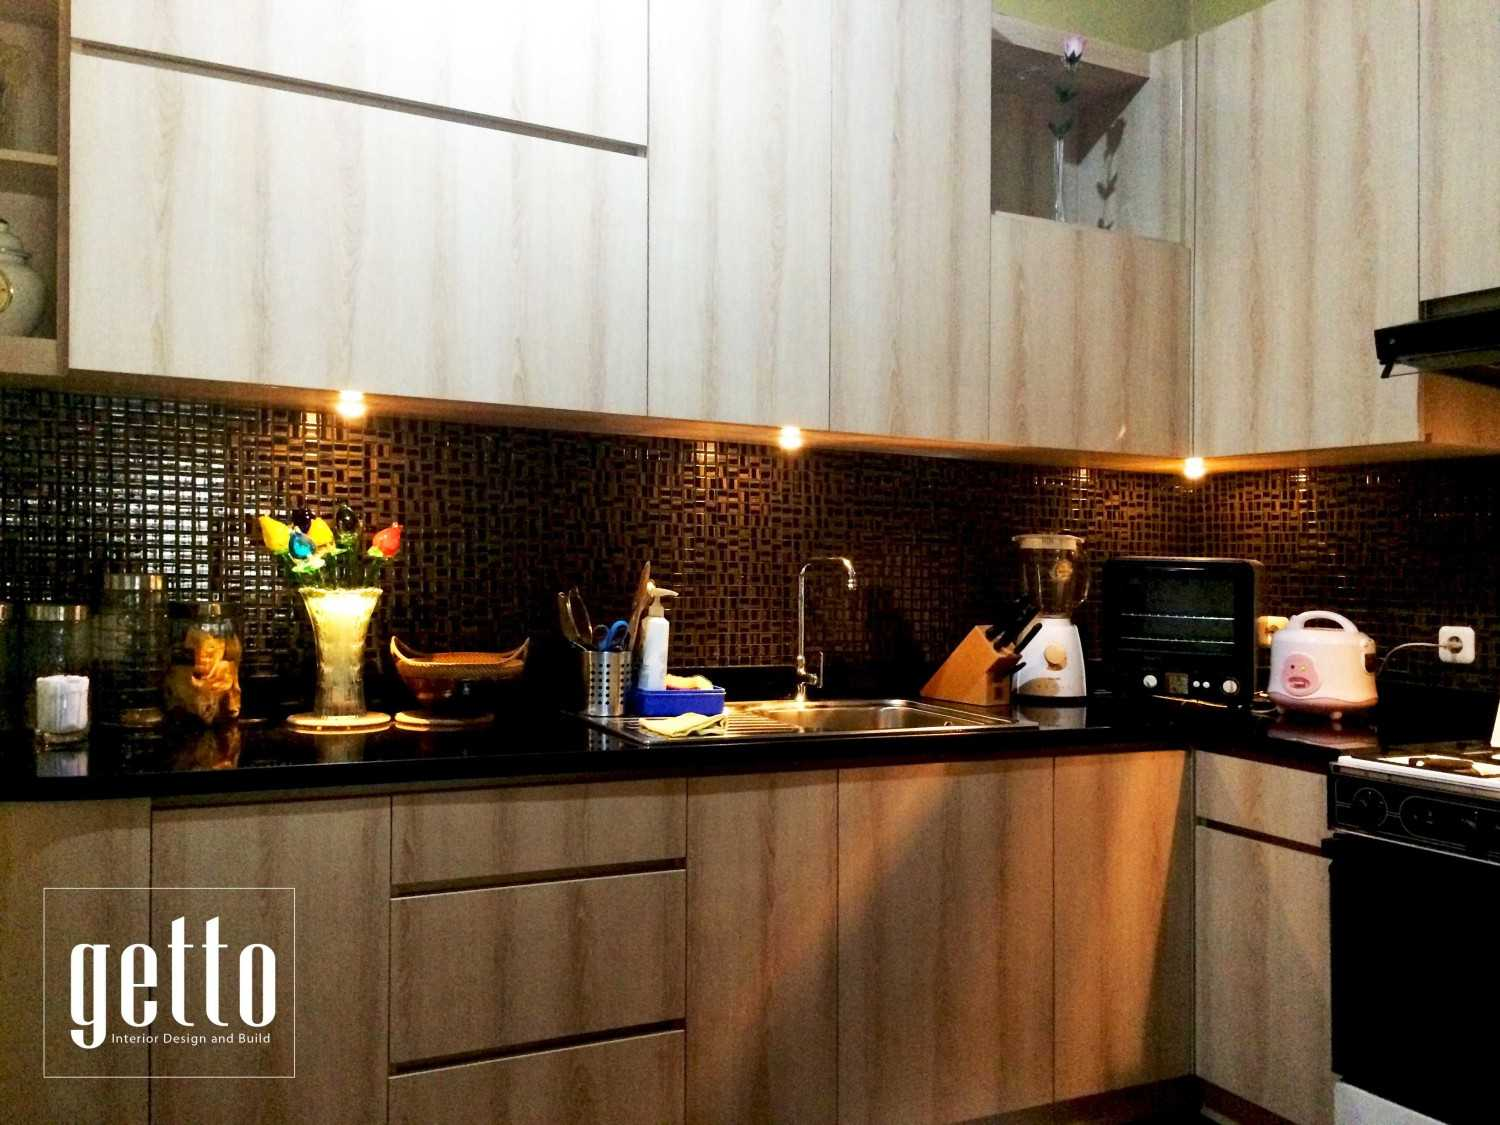 Getto Id Kitchen Set Villa Melati Mas Bsd Bsd Kitchen Modern 14163